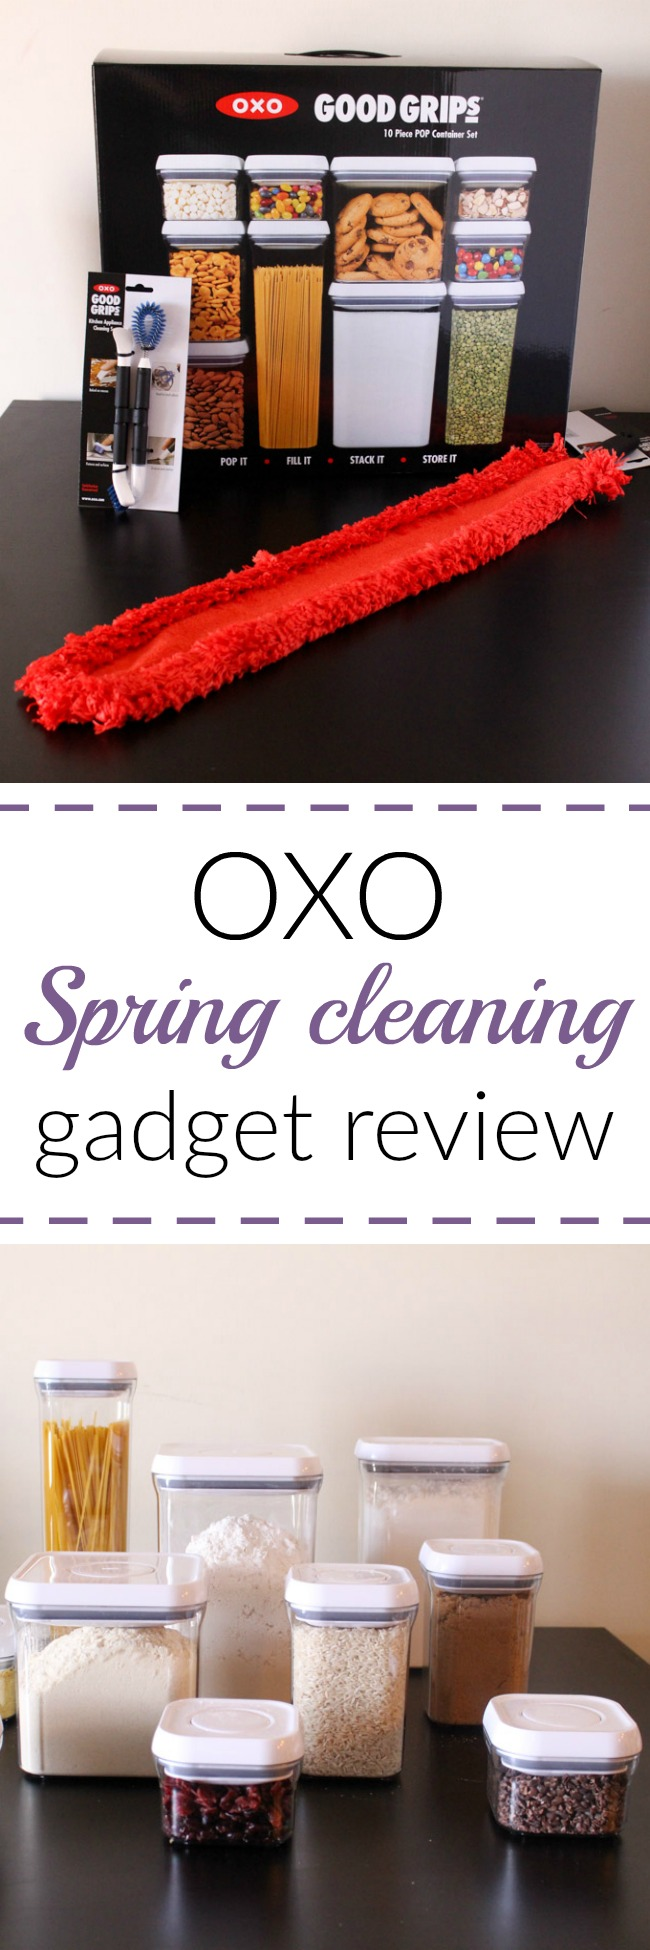 A review of OXO spring cleaning products - there are food storage containers to help organize your pantry and lots of brushes and scrapes to clean every nook and cranny of your kitchen! www.cookingismessy.com